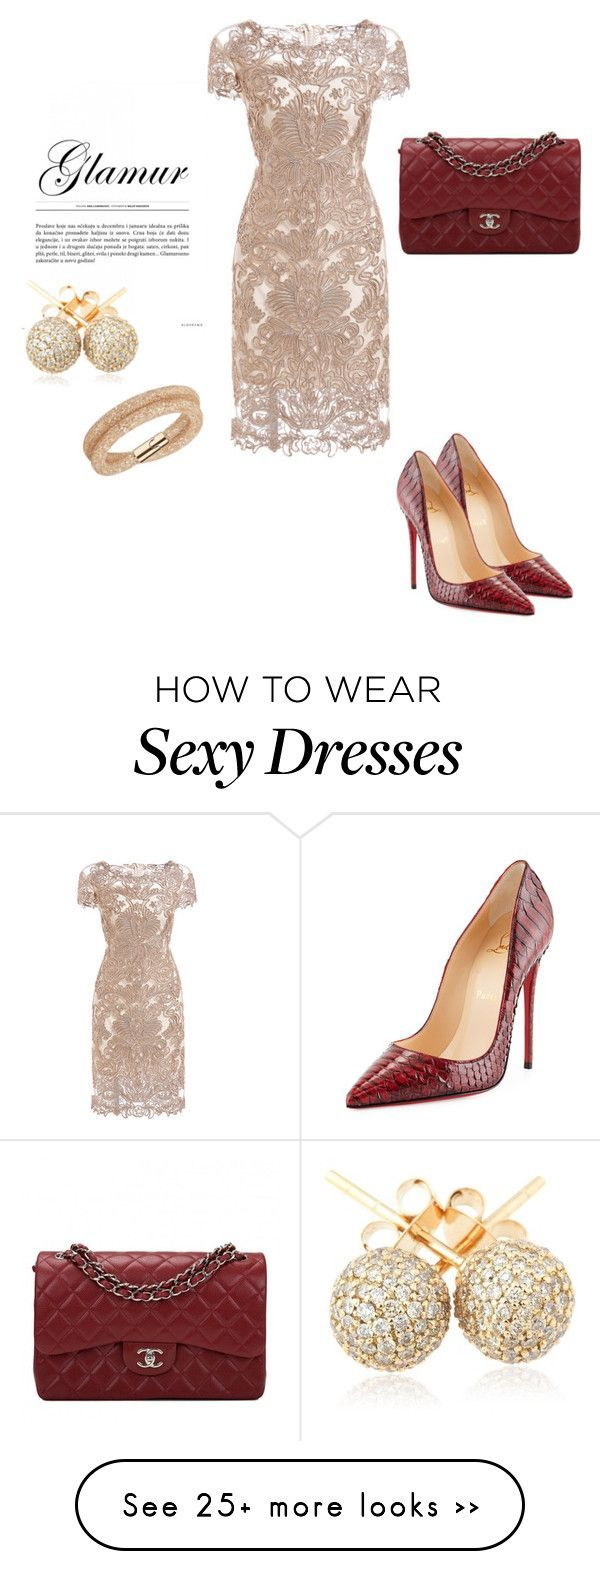 """sexy & elegance"" by littlecanary on Polyvore featuring Christian Louboutin, Chanel, Swarovski and Loushelou:"